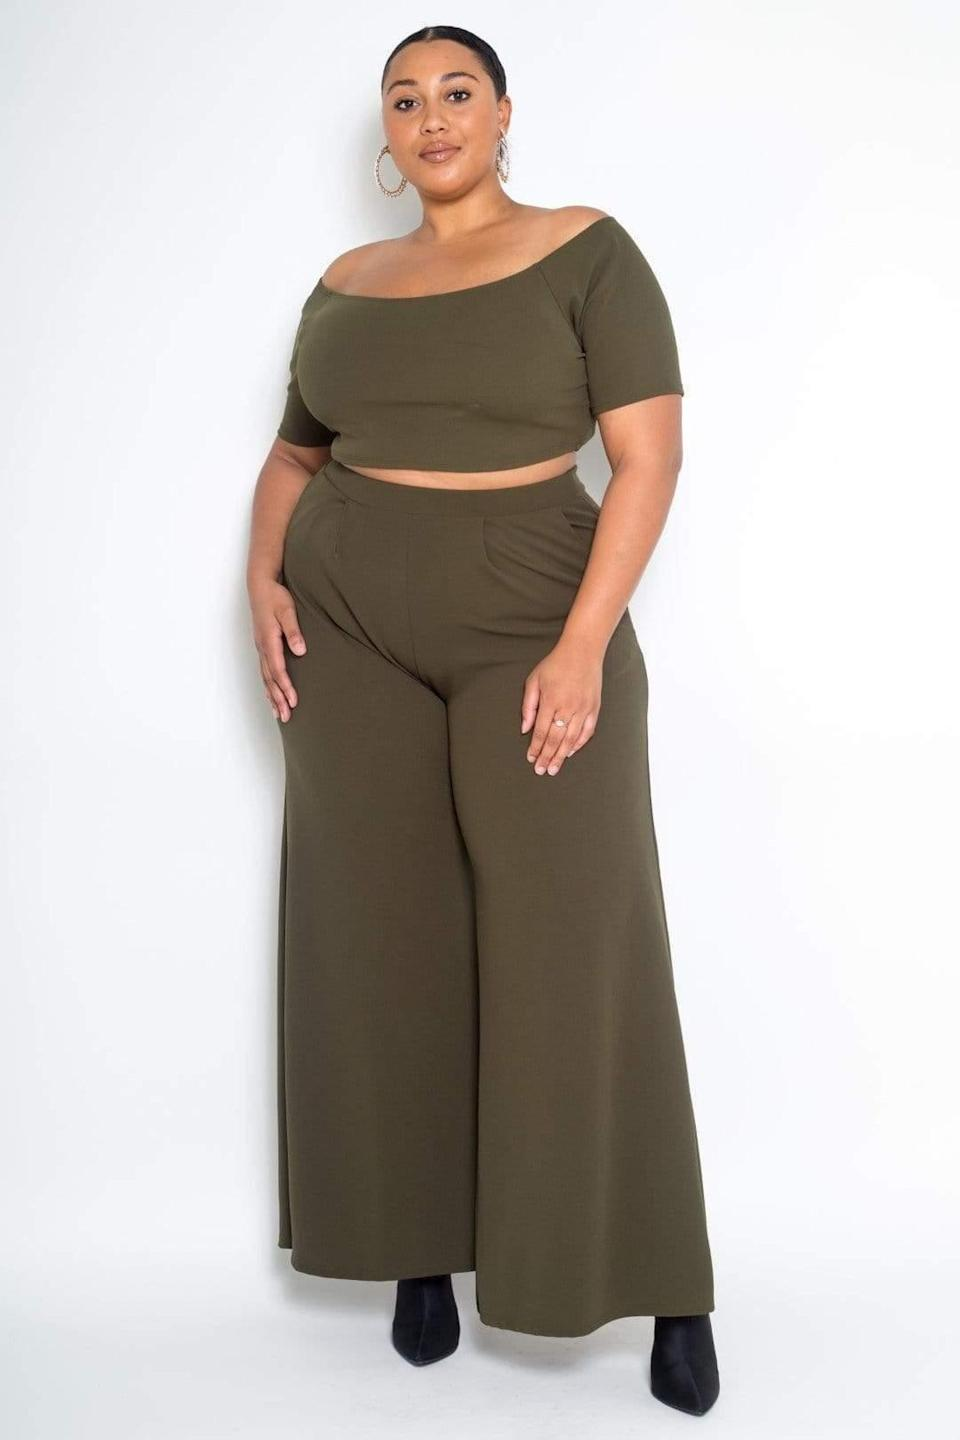 "<br> <br> <strong>Buxom Couture</strong> Crop Top and Wide Leg Pant Set, $, available at <a href=""https://go.skimresources.com/?id=30283X879131&url=https%3A%2F%2Fcoedition.com%2Fproducts%2F3867899035763"" rel=""nofollow noopener"" target=""_blank"" data-ylk=""slk:CoEdition"" class=""link rapid-noclick-resp"">CoEdition</a>"